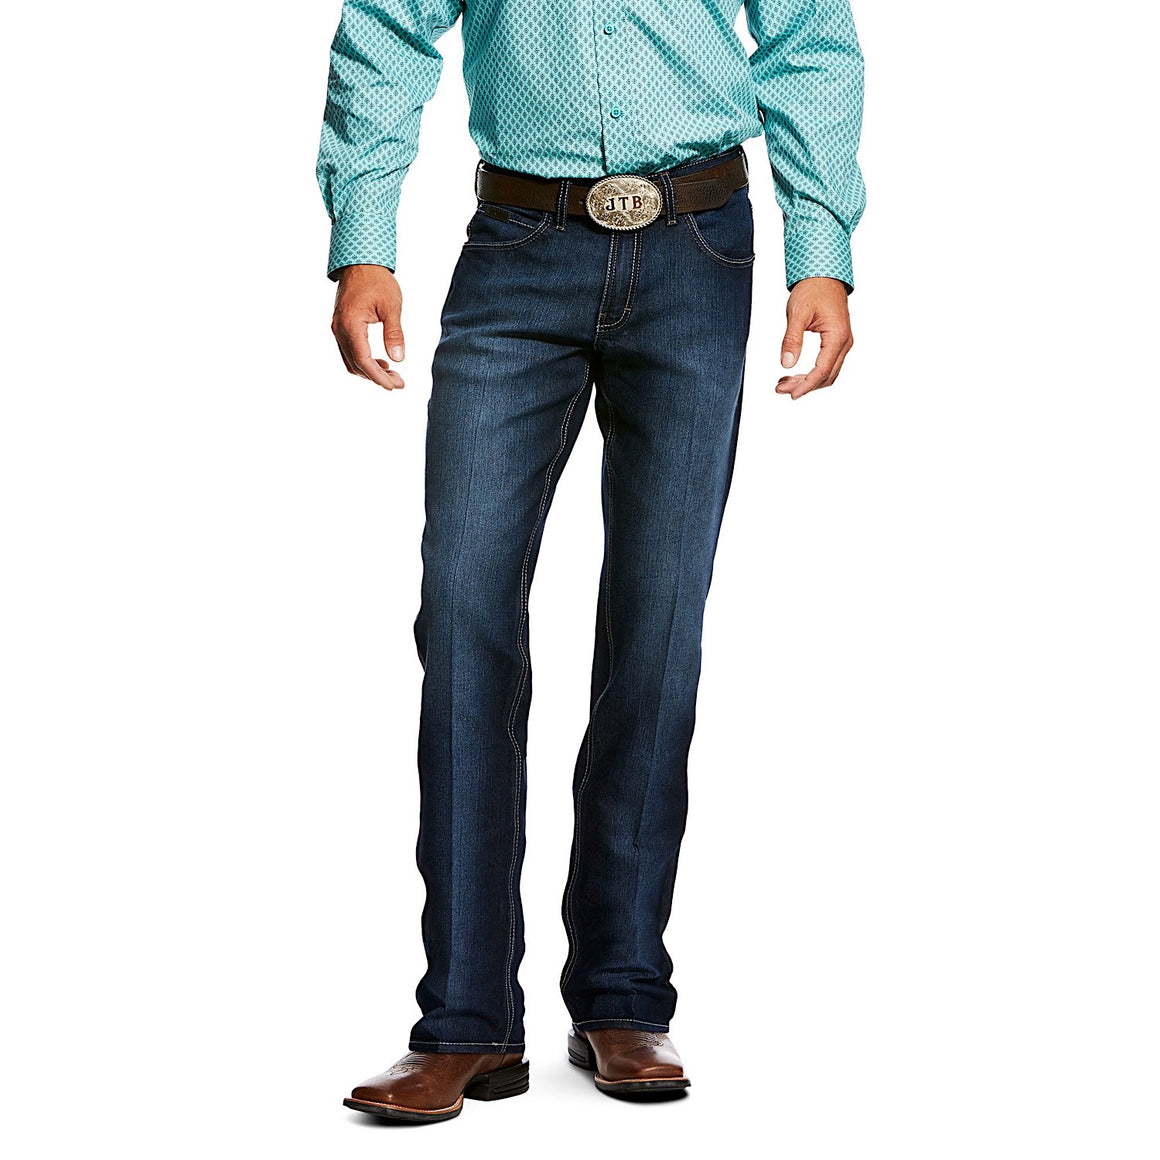 Ariat Mens Relentless Stretch Original Fit Chance Jeans Clayton